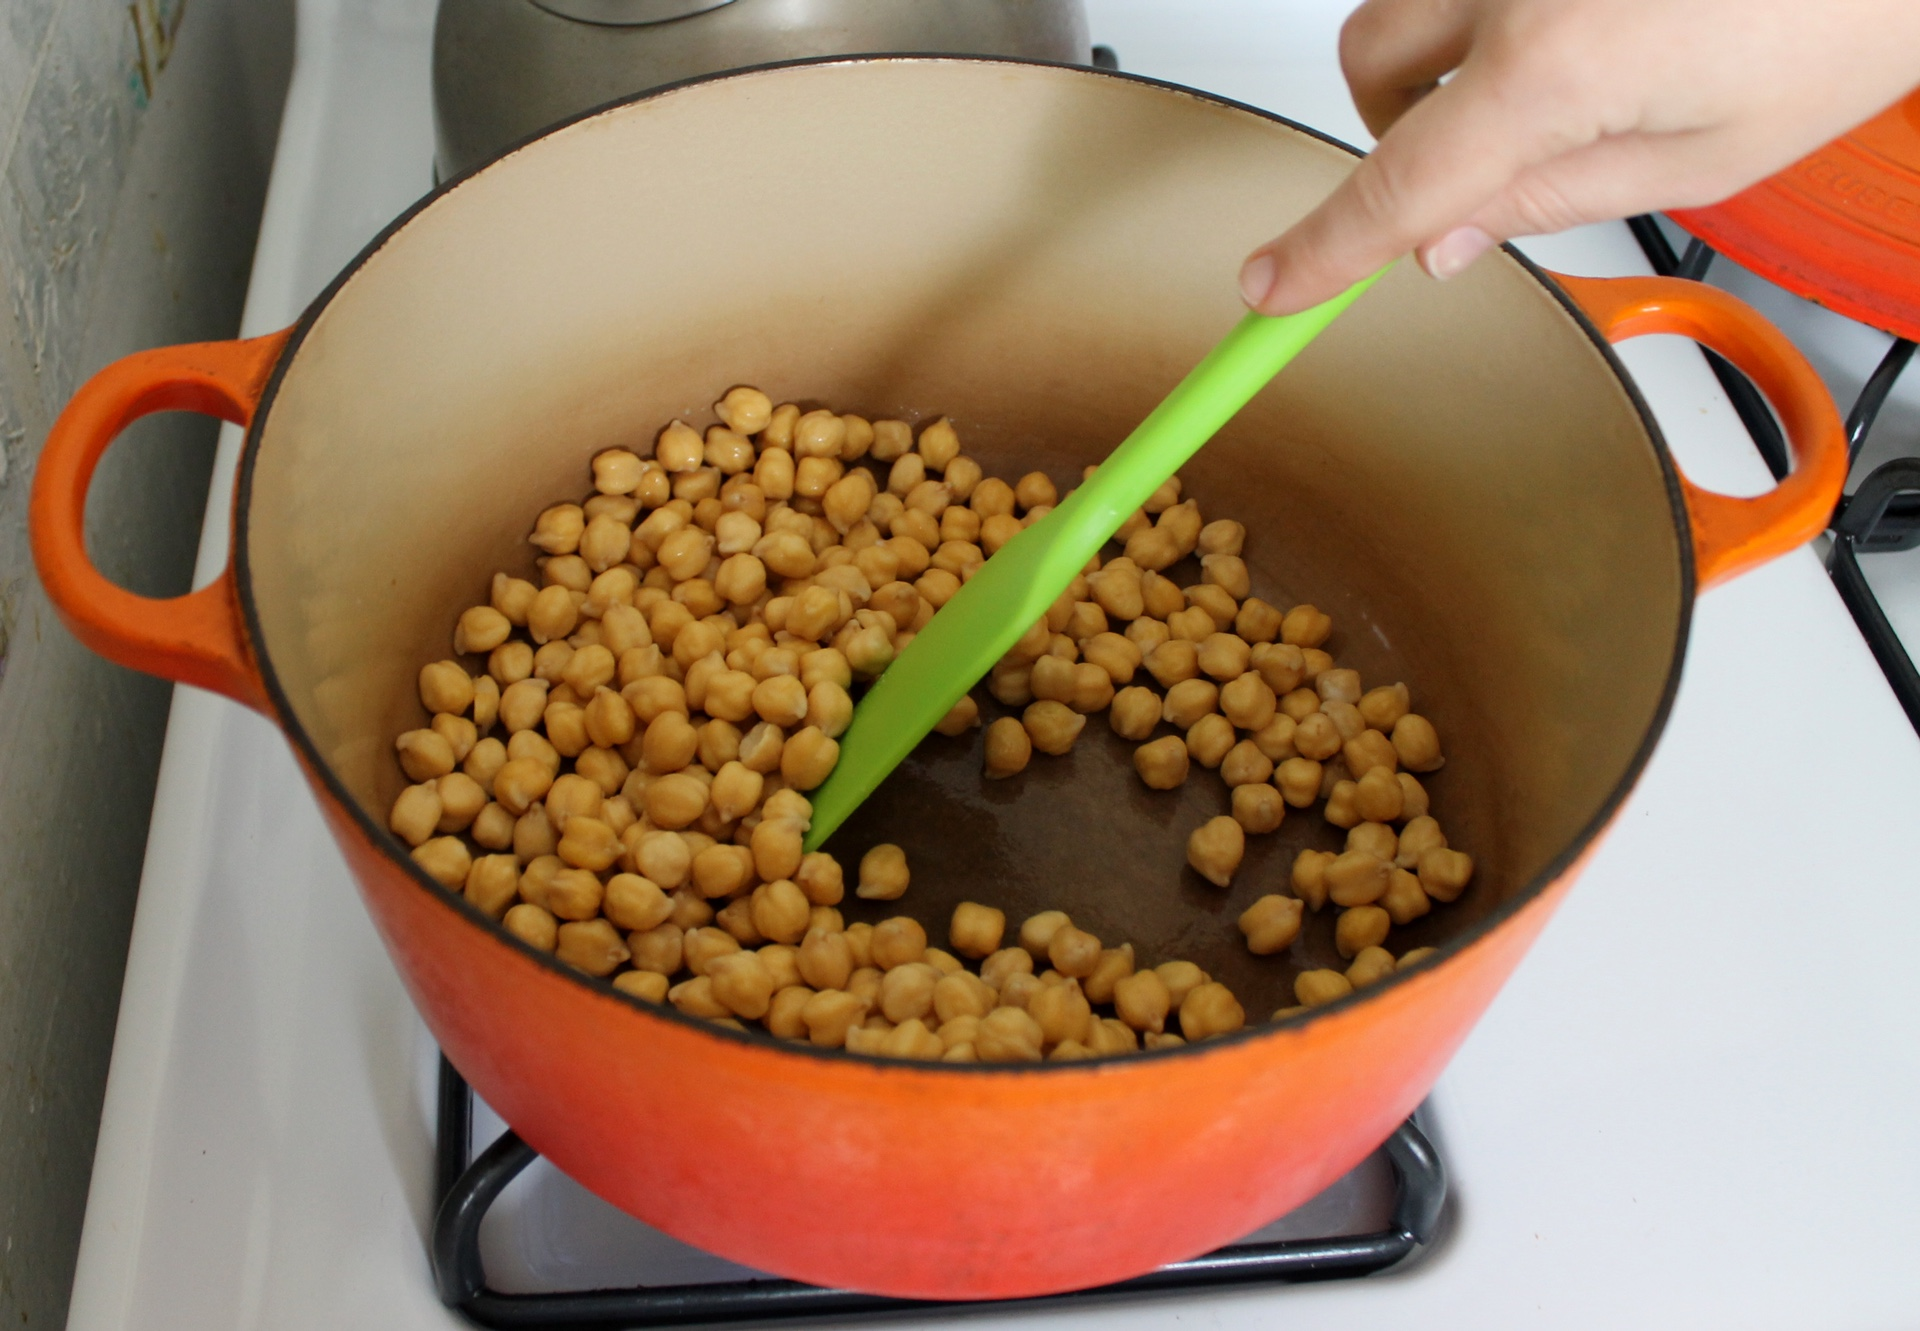 Cooking the chickpeas dry with a little baking soda speeds up cooking and helps remove pesky chickpea skins.